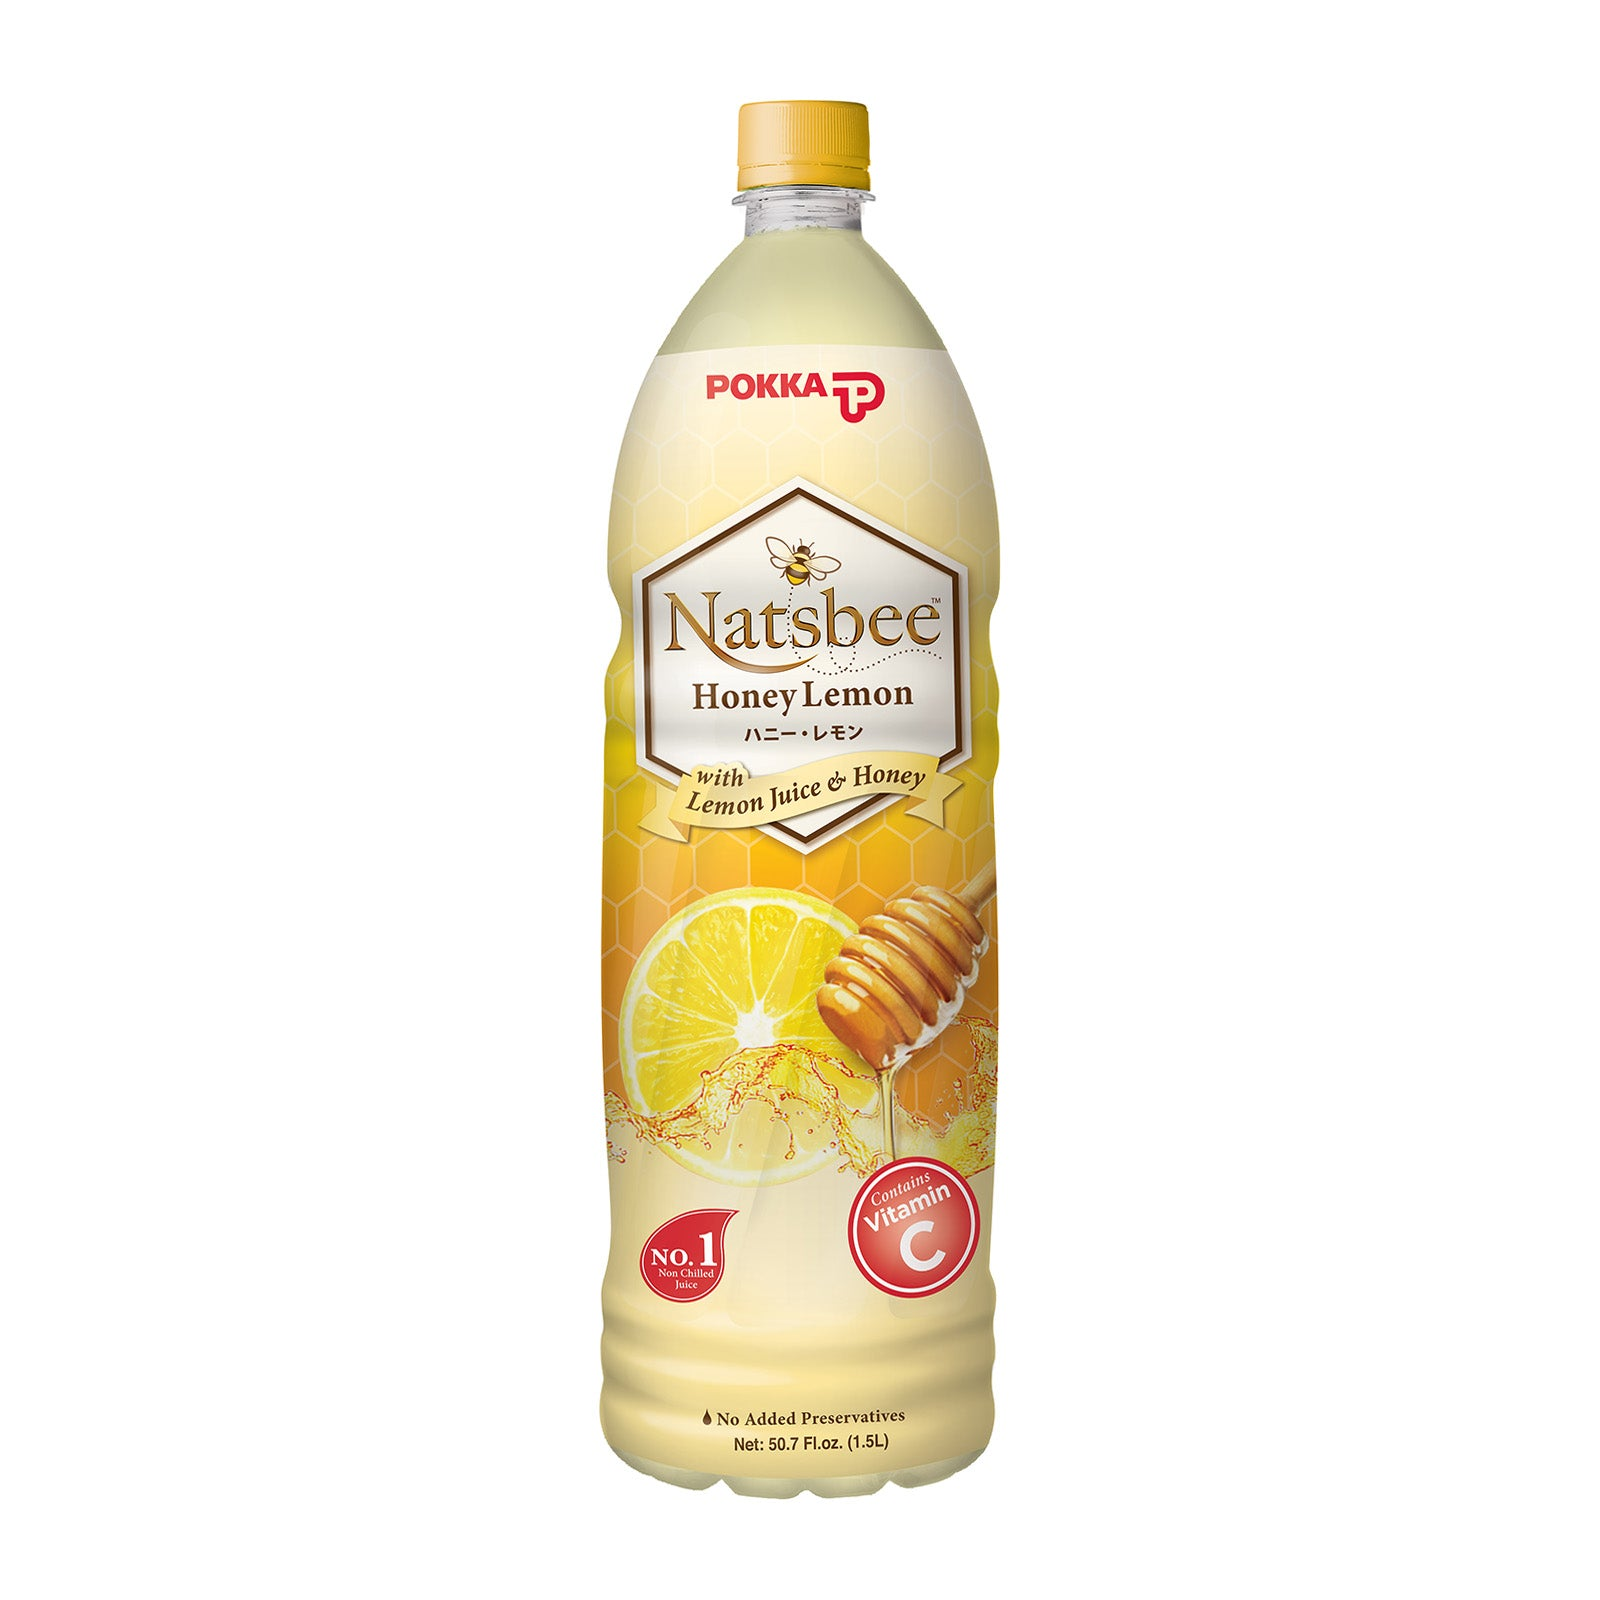 Pokka Natsbee Honey Lemon 1.5L